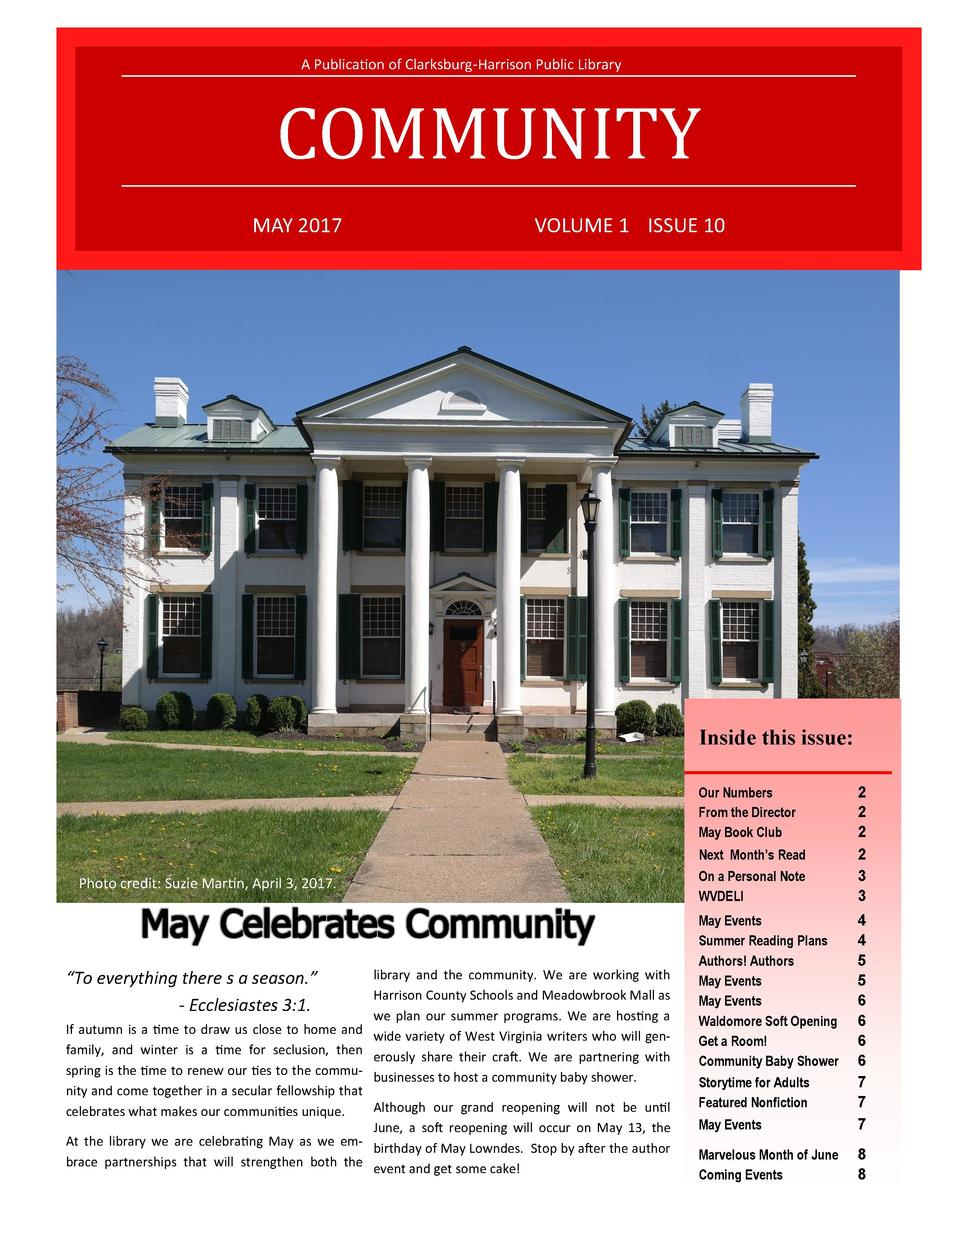 A Publication of Clarksburg-Harrison Public Library  COMMUNITY MAY 2017  VOLUME 1 ISSUE 10  Inside this issue  Our Numbers...